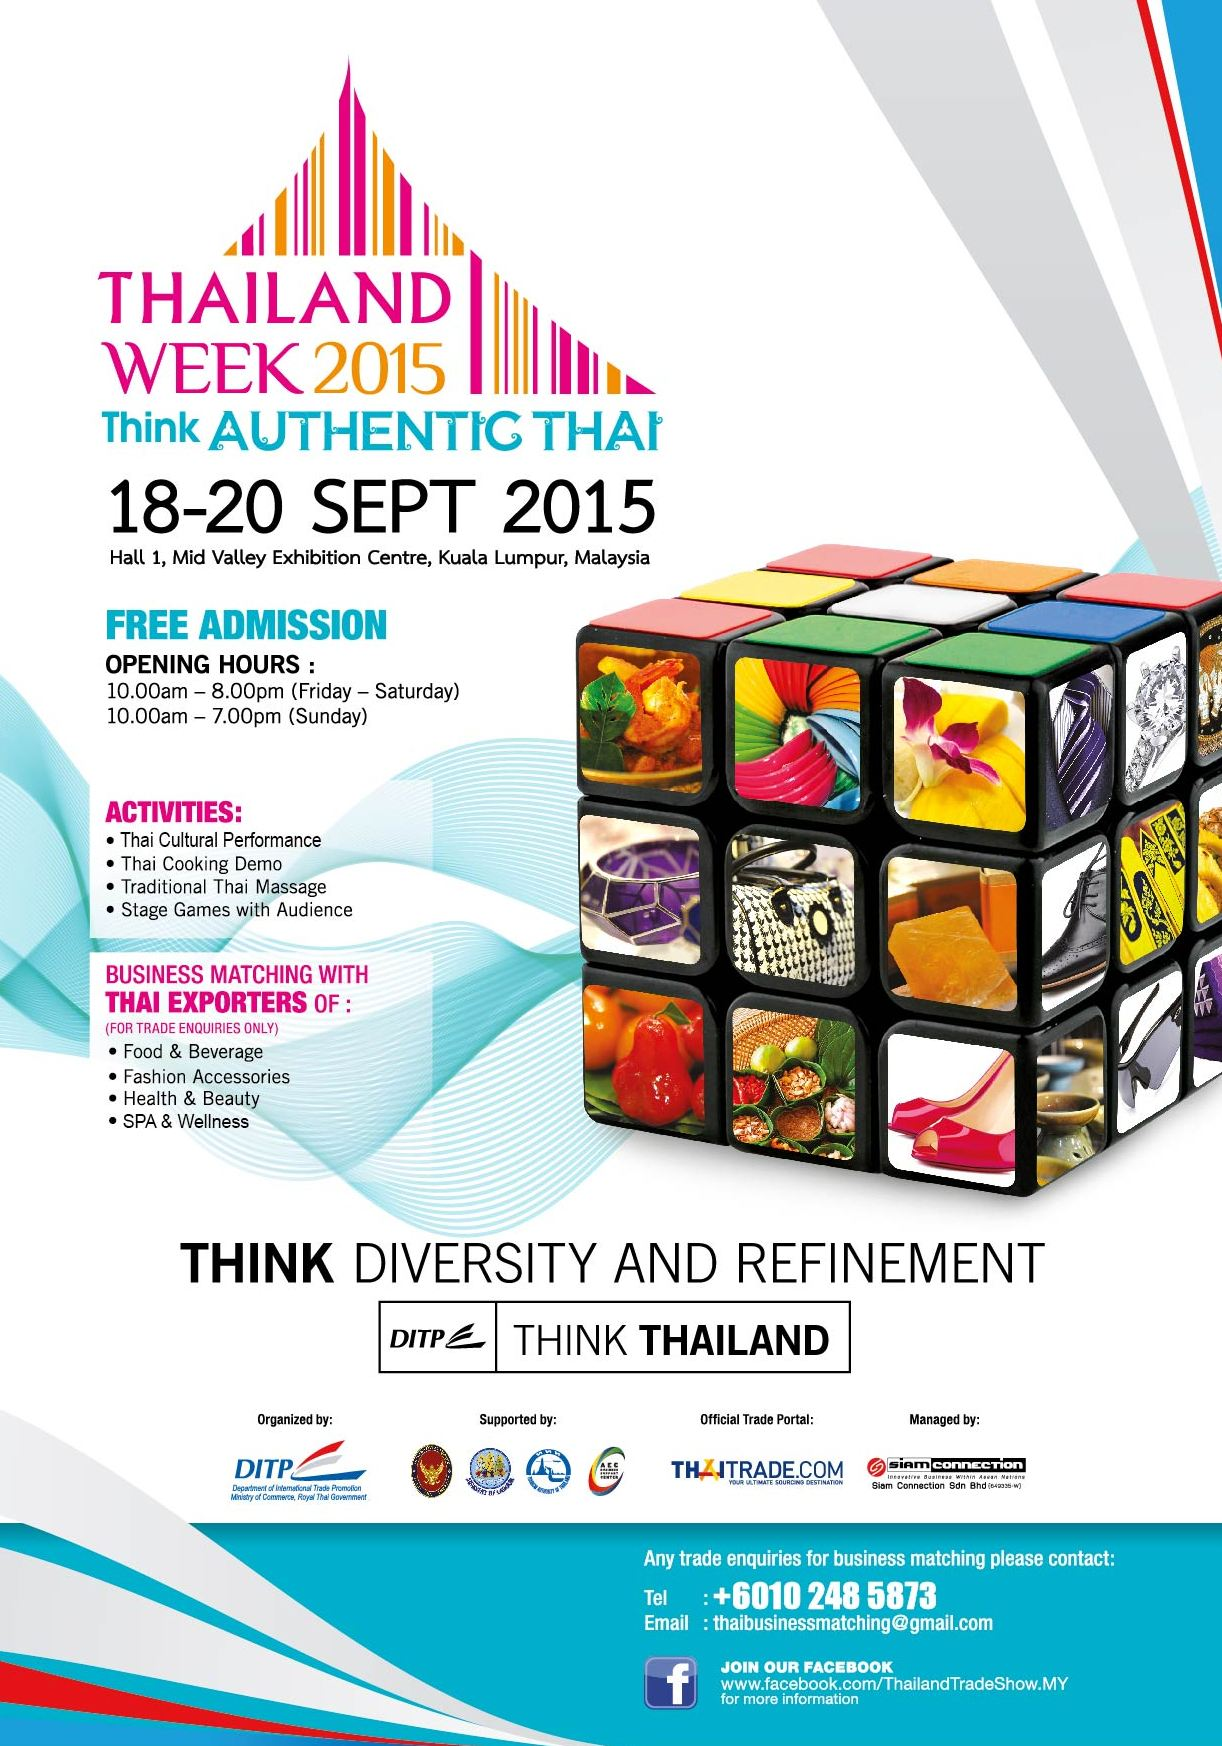 Thailand Week Thai Fashion Food And Fun: Innovative Business Within ASEAN Nations